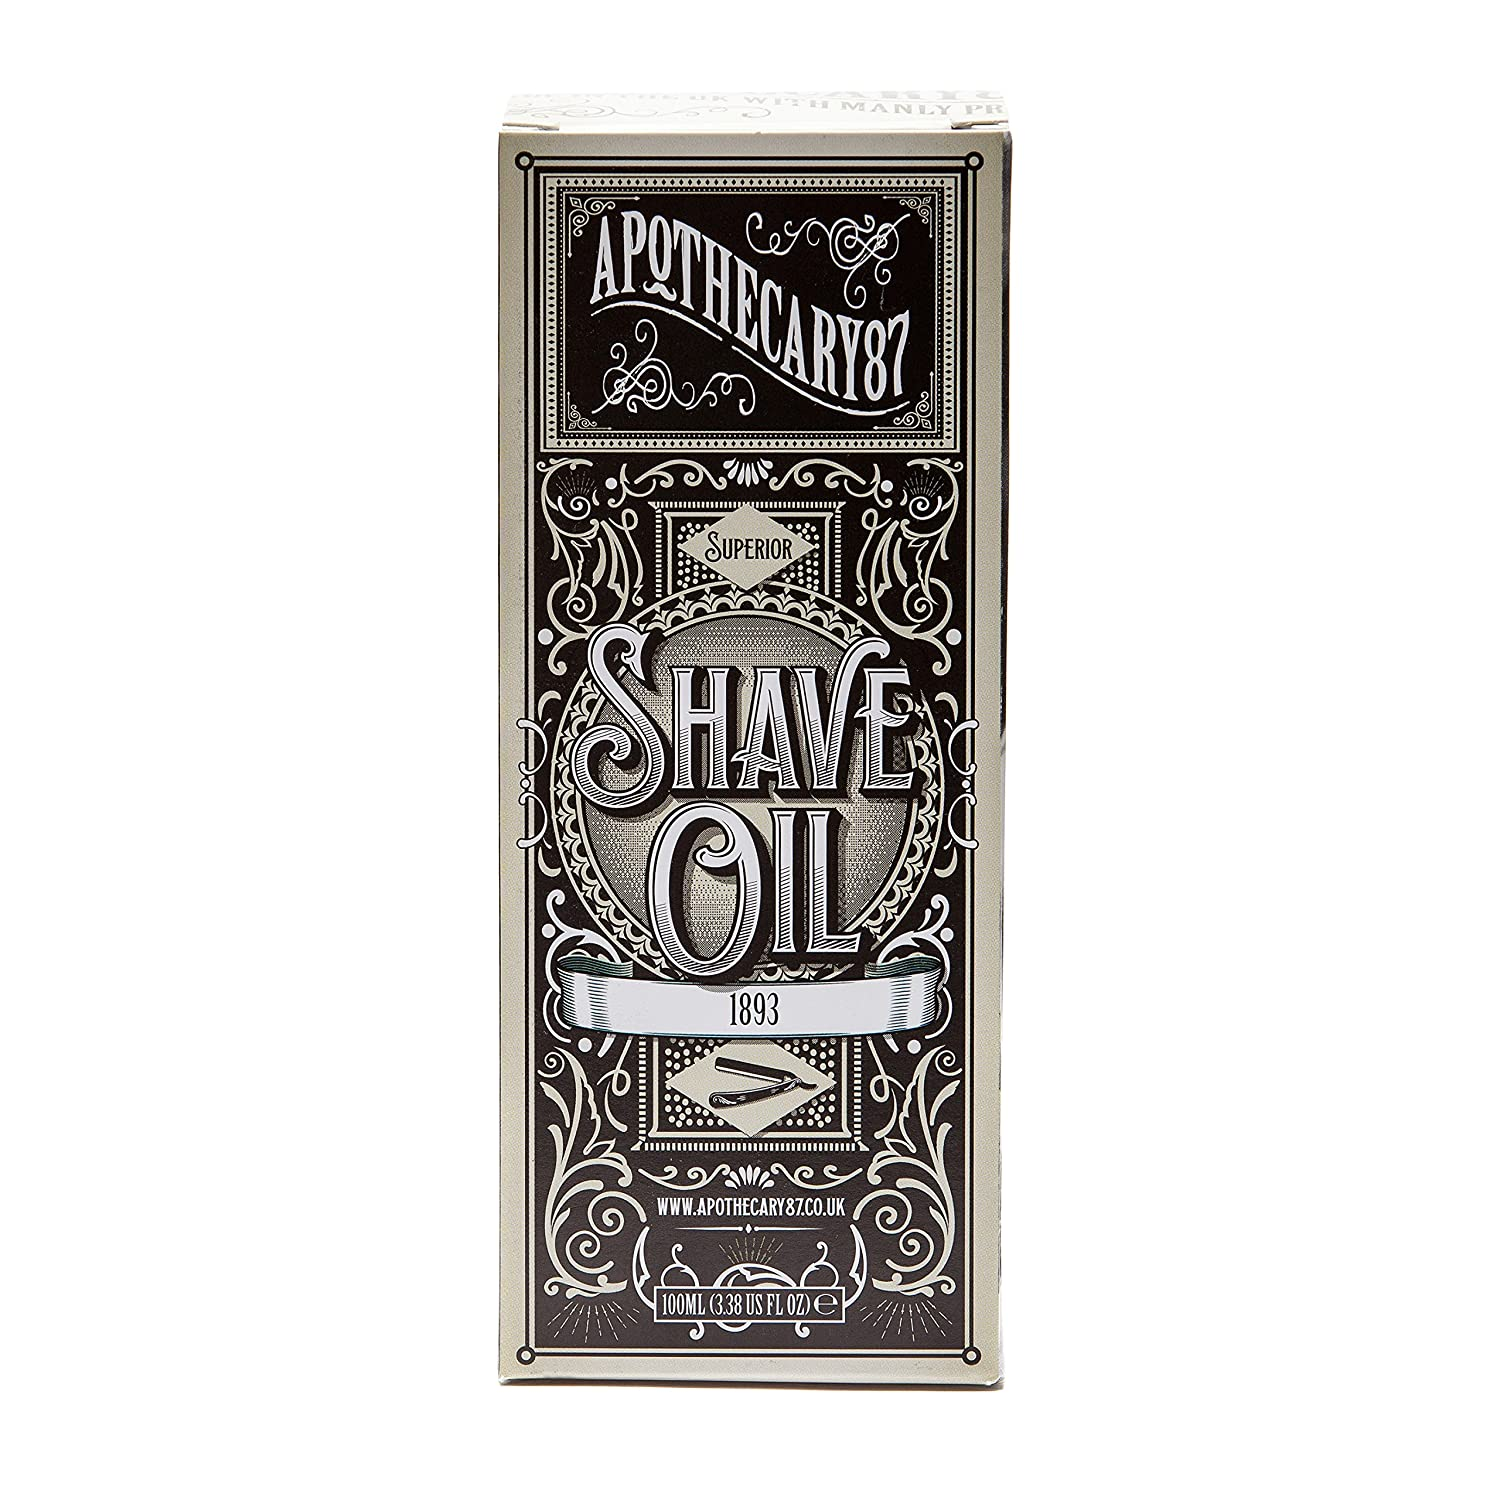 Apothecary 87, 1893 Hydrating and Healing Shaving Oil - Sandalwood and Vanilla, 86g (3 Oz) by Apothecary 87 A87-008